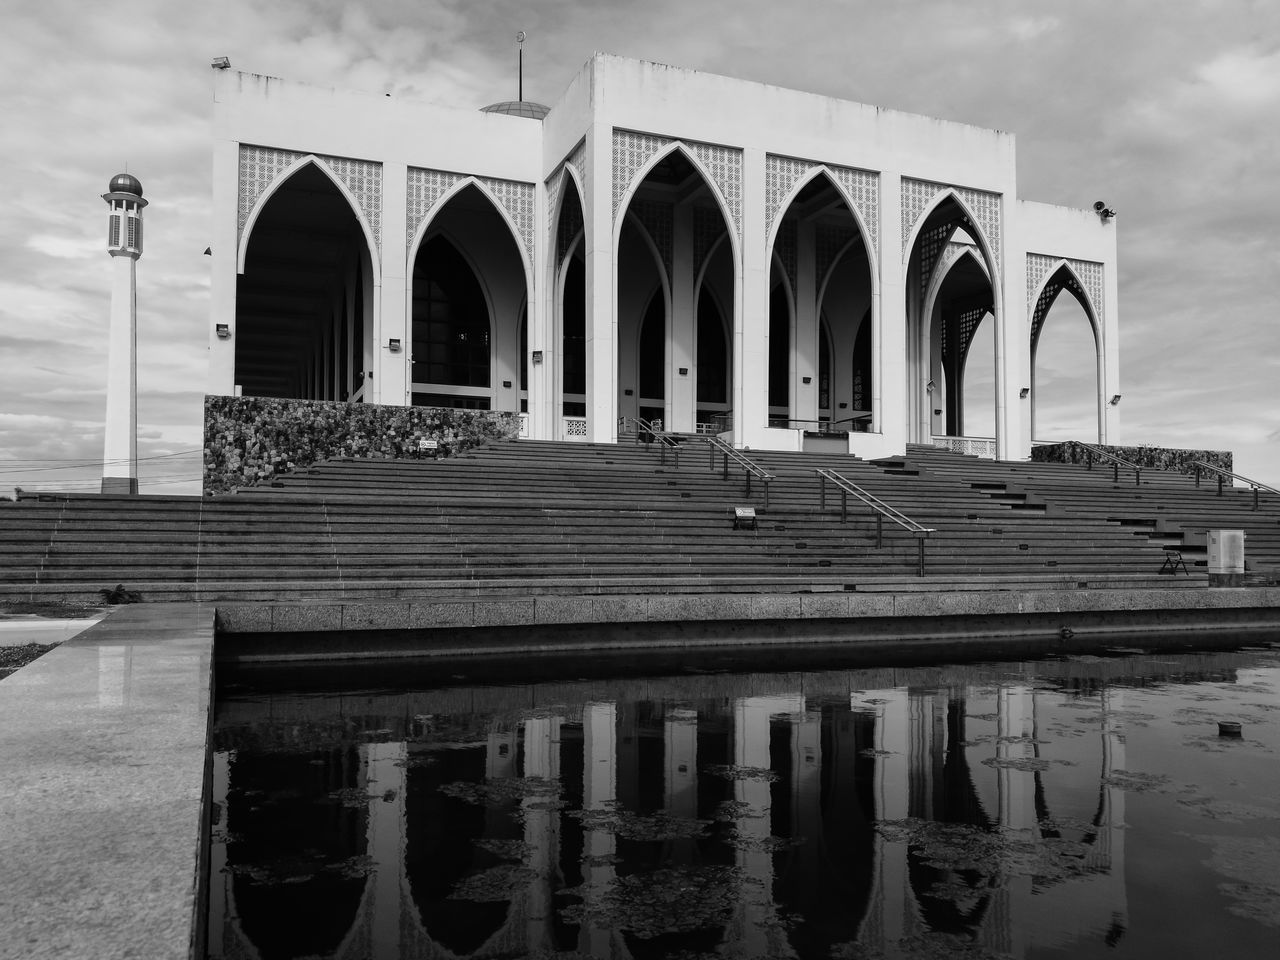 Architecture Water Water Reflections Sky Arch Mosque Day Outdoors Cloud - Sky Building Exterior Thailand Waterfront Exterior No People Monocrome Thai Monochrom Architectural Column Monochrome Photography Monochrome Architecturephotography Thaïlande Monochromatic